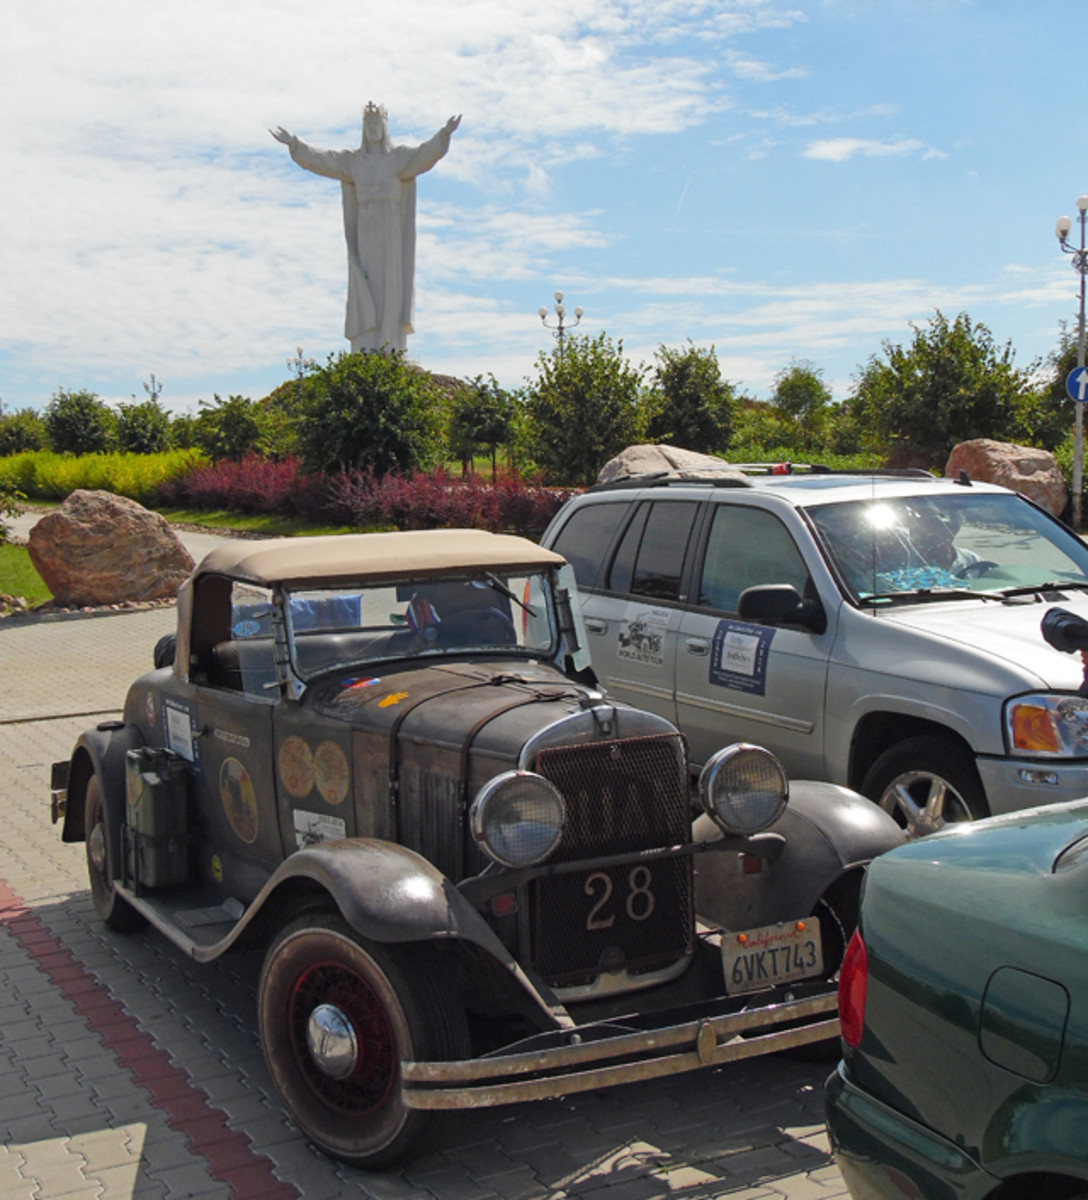 The Plymouth and Leo Jansens' late-model GMC Envoy parked near the world's largest Jesus statute located in Poland.